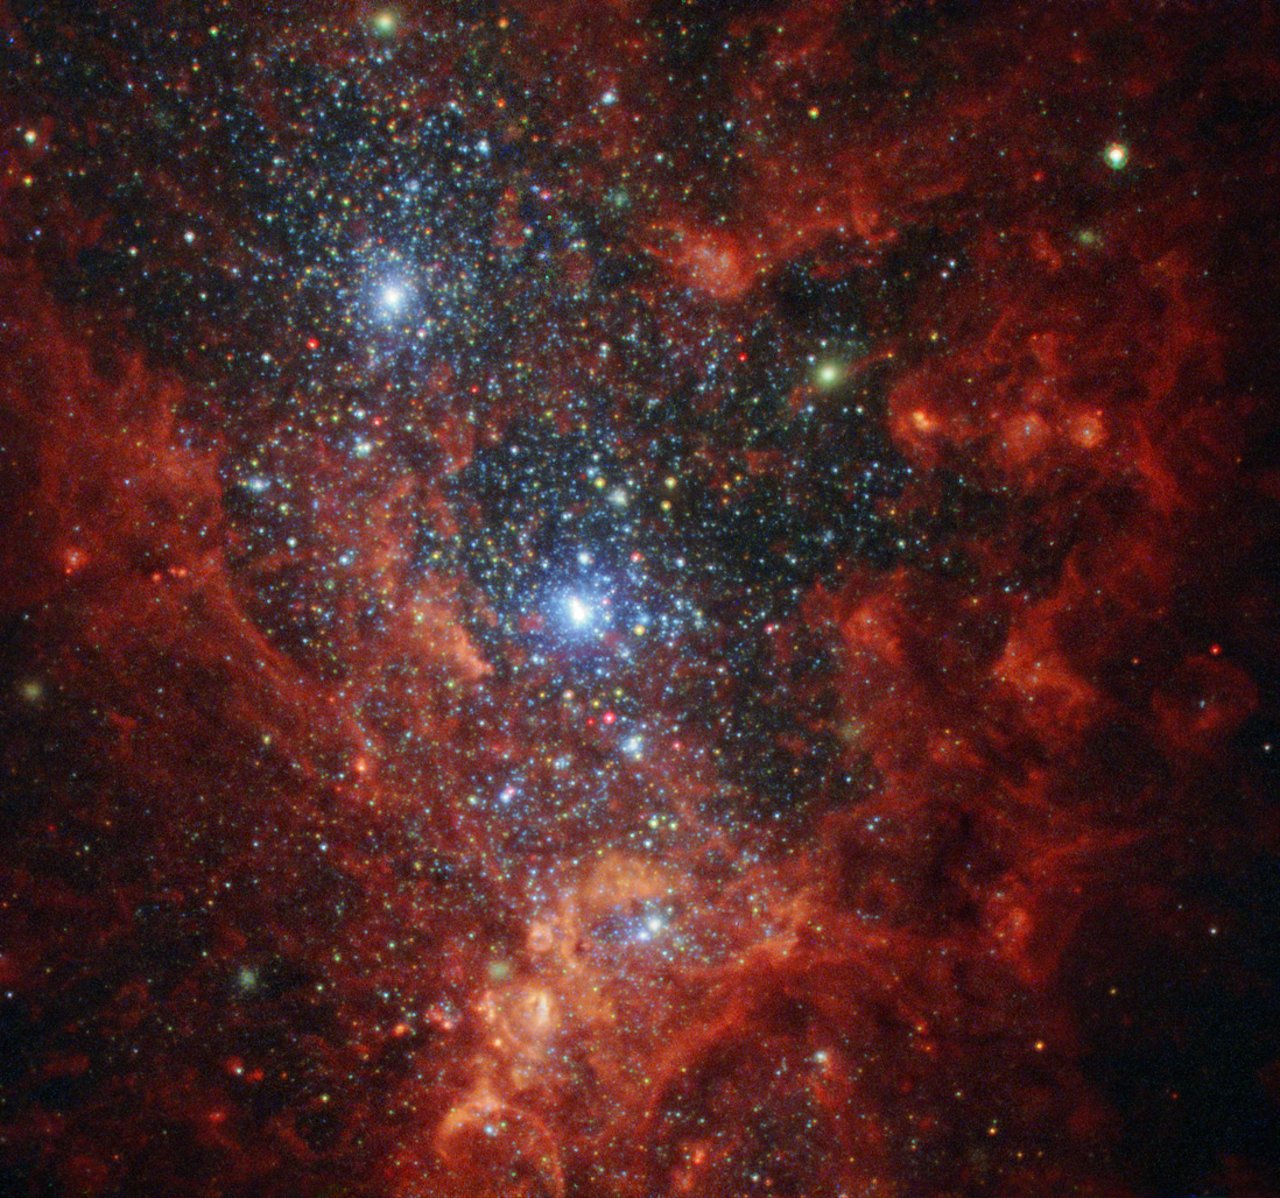 This NASA/ESA Hubble Space Telescope image reveals the iridescent interior of one of the most active galaxies in our local neighbourhood — NGC 1569, a small galaxy located about eleven million light-years away in the constellation of Camelopardalis (The Giraffe). This galaxy is currently a hotbed of vigorous star formation. NGC 1569 is a starburst galaxy, meaning that — as the name suggests — it is bursting at the seams with stars, and is currently producing them at a rate far higher than that observed in most other galaxies. For almost 100 million years, NGC 1569 has pumped out stars over 100 times faster than the Milky Way! As a result, this glittering galaxy is home to super star clusters, three of which are visible in this image — one of the two bright clusters is actually the superposition of two massive clusters. Each containing more than a million stars, these brilliant blue clusters reside within a large cavity of gas carved out by multiple supernovae, the energetic remnants of massive stars. In 2008, Hubble observed the galaxy's cluttered core and sparsely populated outer fringes. By pinpointing individual red giant stars, Hubble's Advanced Camera for Surveys enabled astronomers to calculate a new — and much more precise — estimate for NGC 1569's distance. This revealed that the galaxy is actually one and a half times further away than previously thought, and a member of the IC 342 galaxy group. Astronomers suspect that the IC 342 cosmic congregation is responsible for the star-forming frenzy observed in NGC 1569. Gravitational interactions between this galactic group are believed to be compressing the gas within NGC 1569. As it is compressed, the gas collapses, heats up and forms new stars.